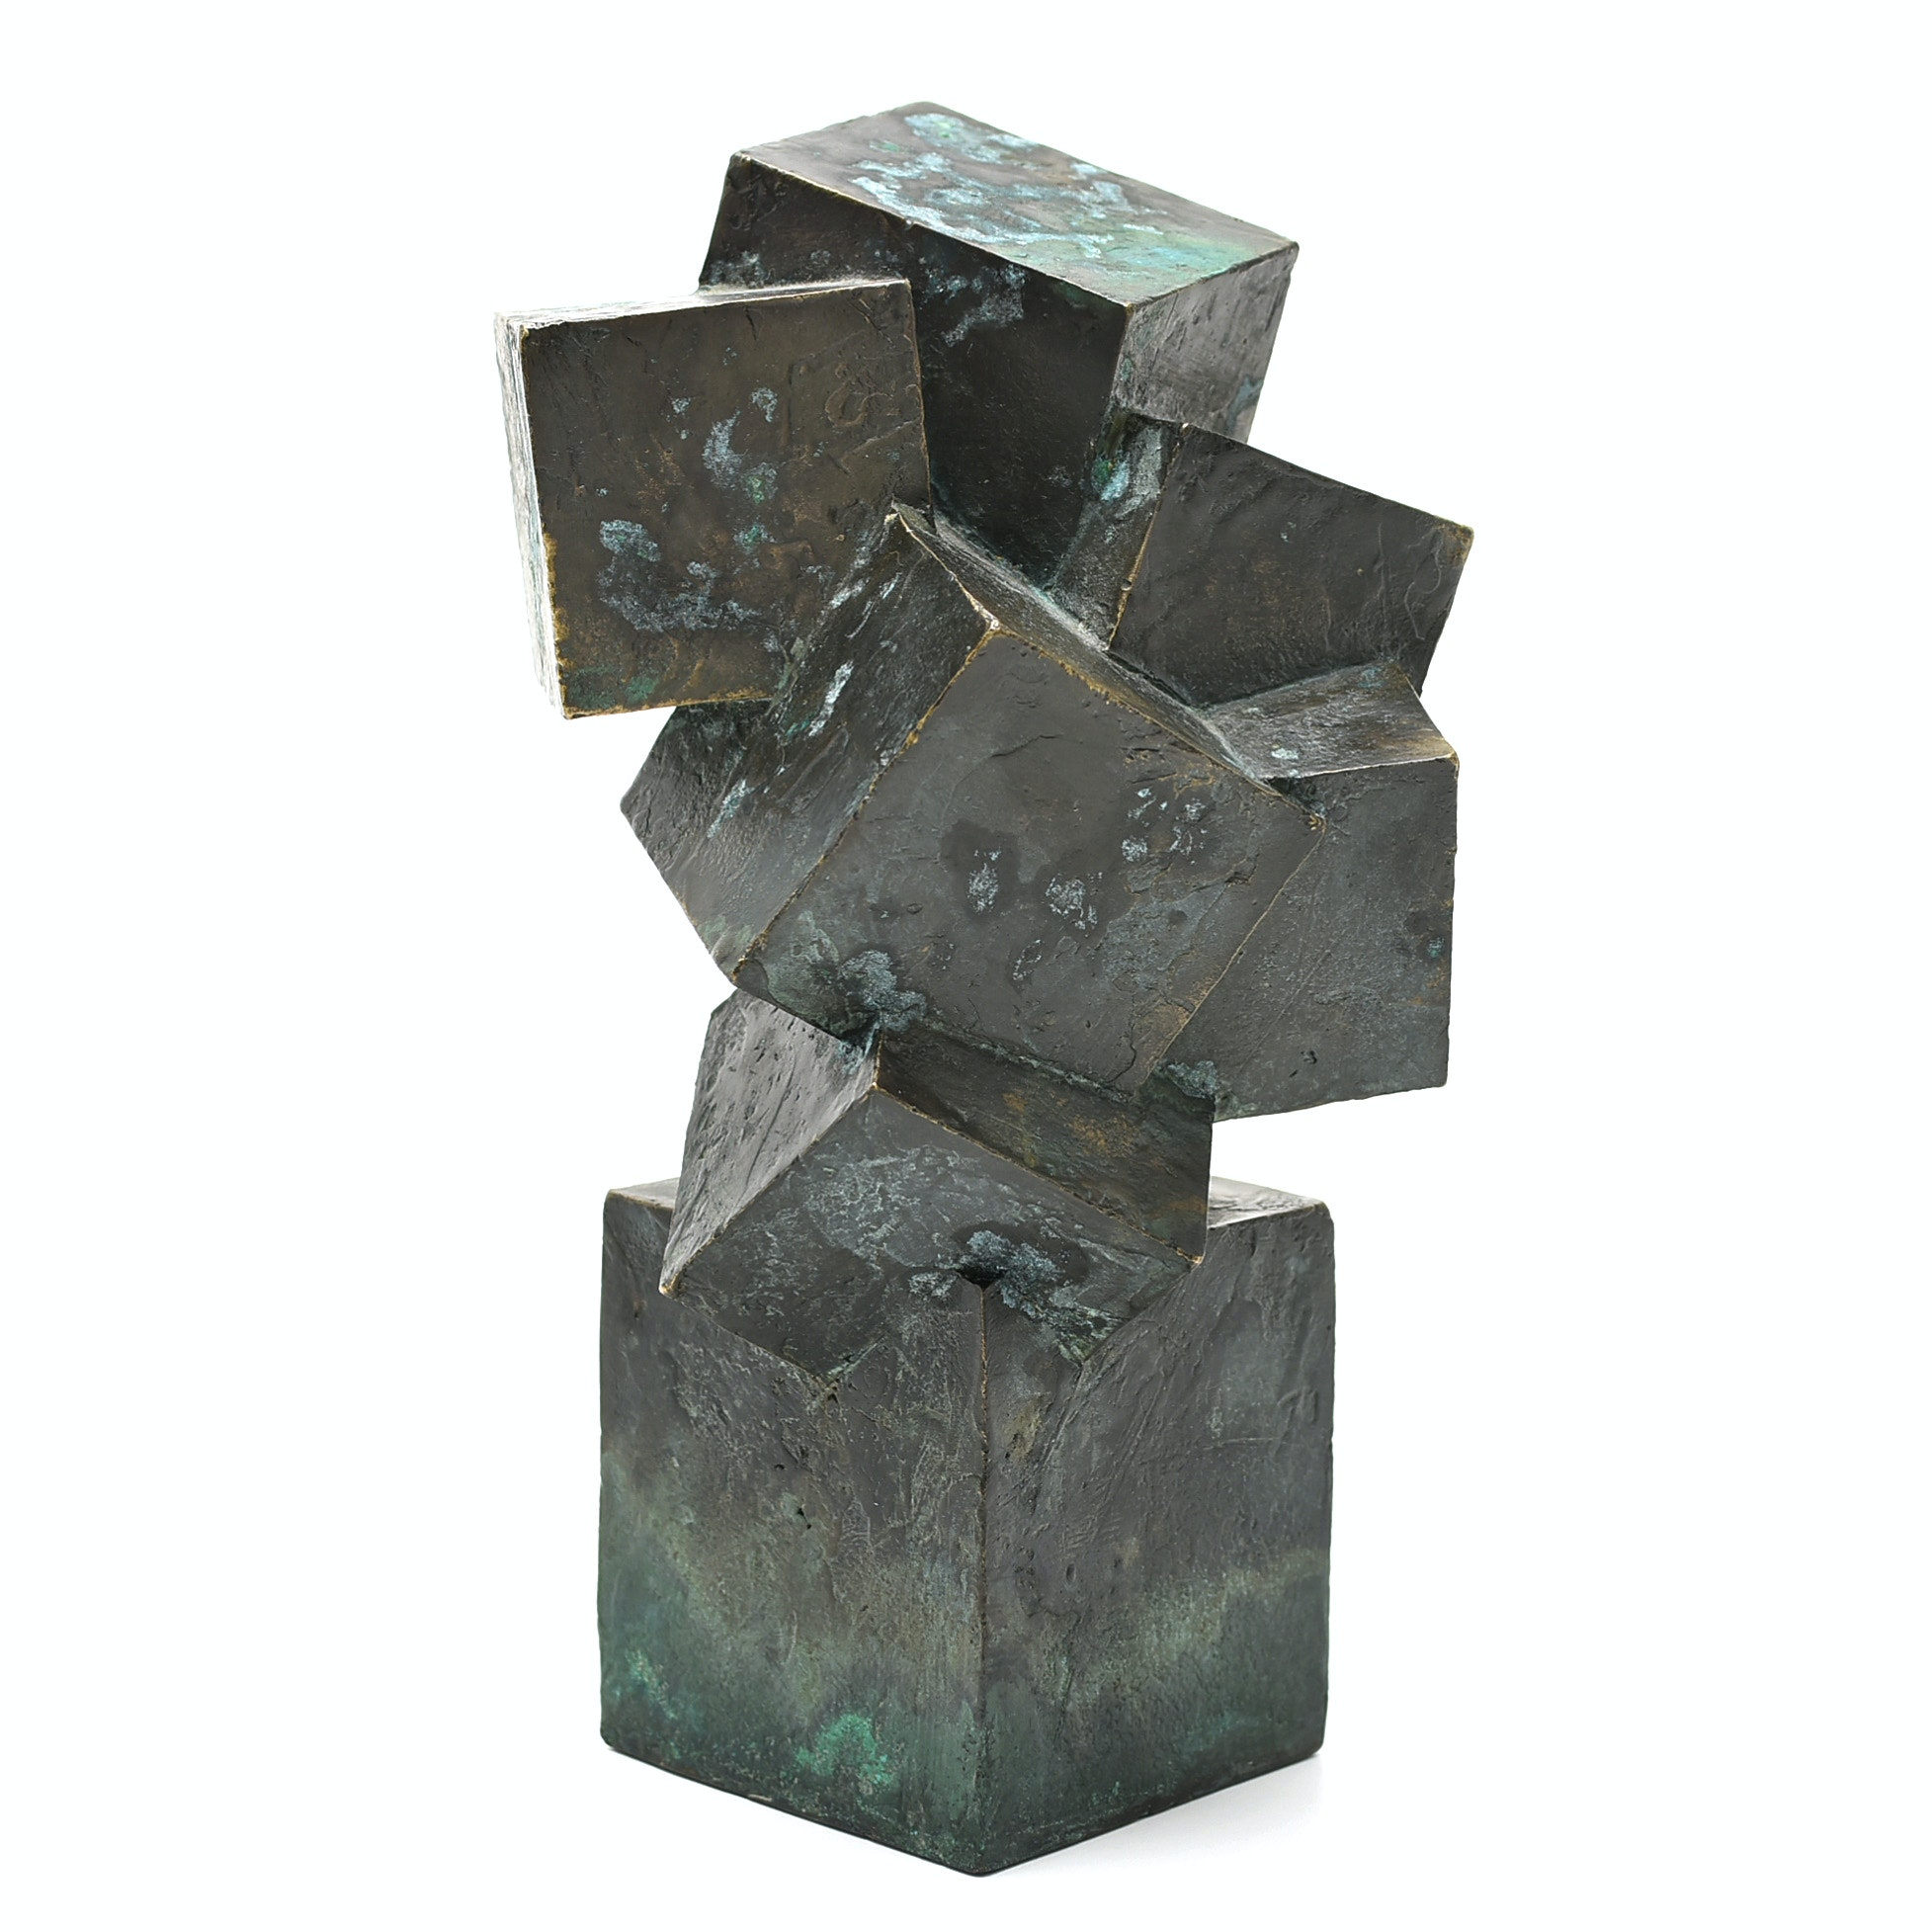 Bruce Beasley 2006 Abstract Bronze Sculpture